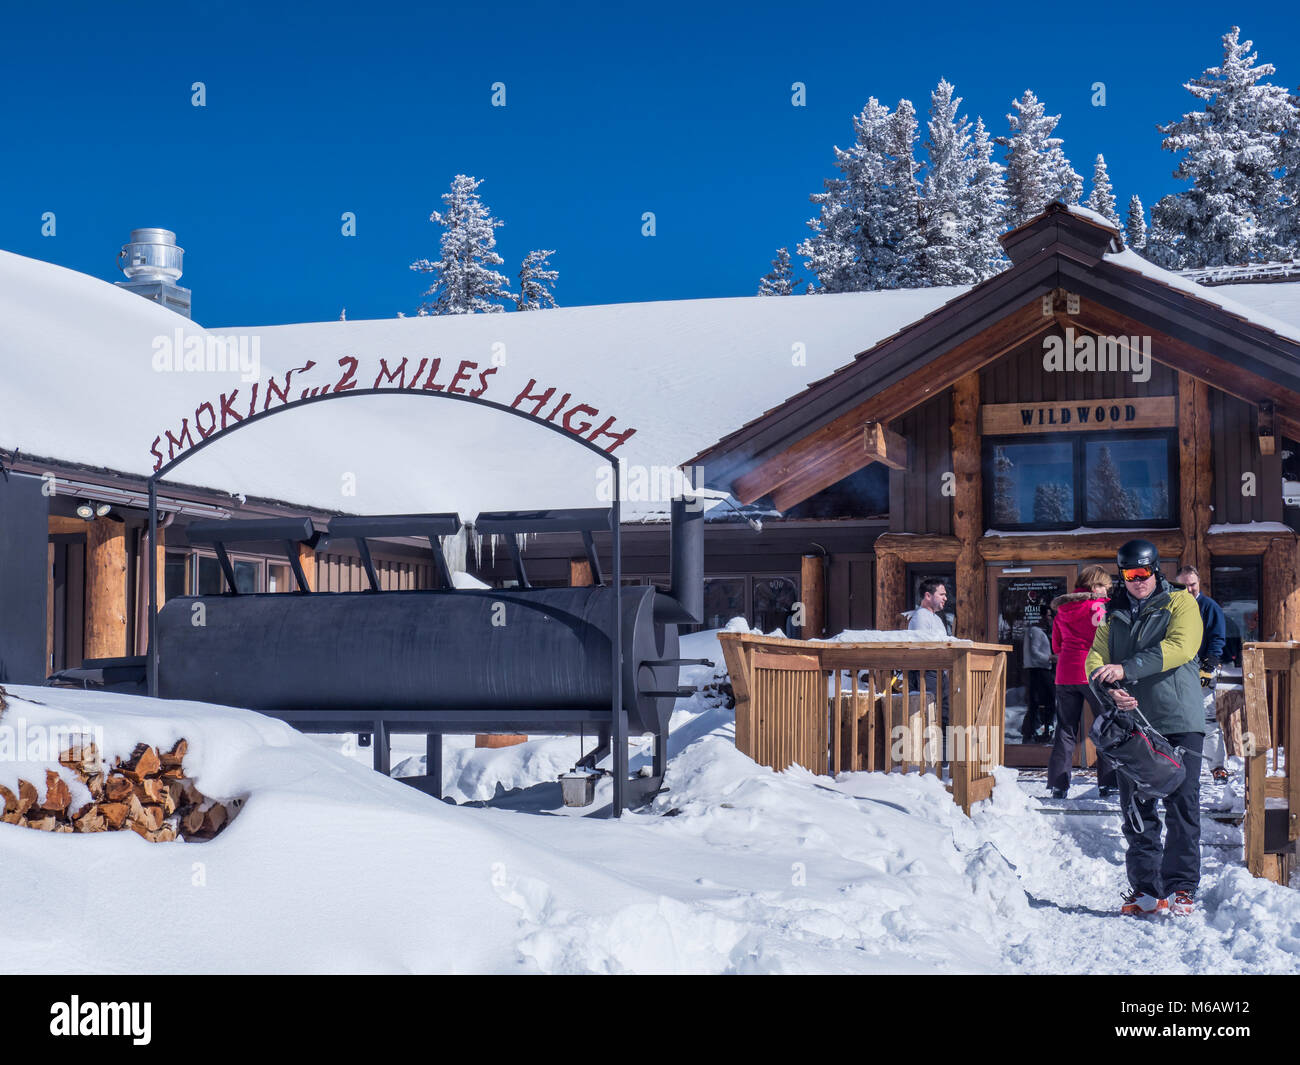 Wildwood day lodge and barbecue restaurant, winter, Vail Ski Resort, Vail, Colorado. - Stock Image